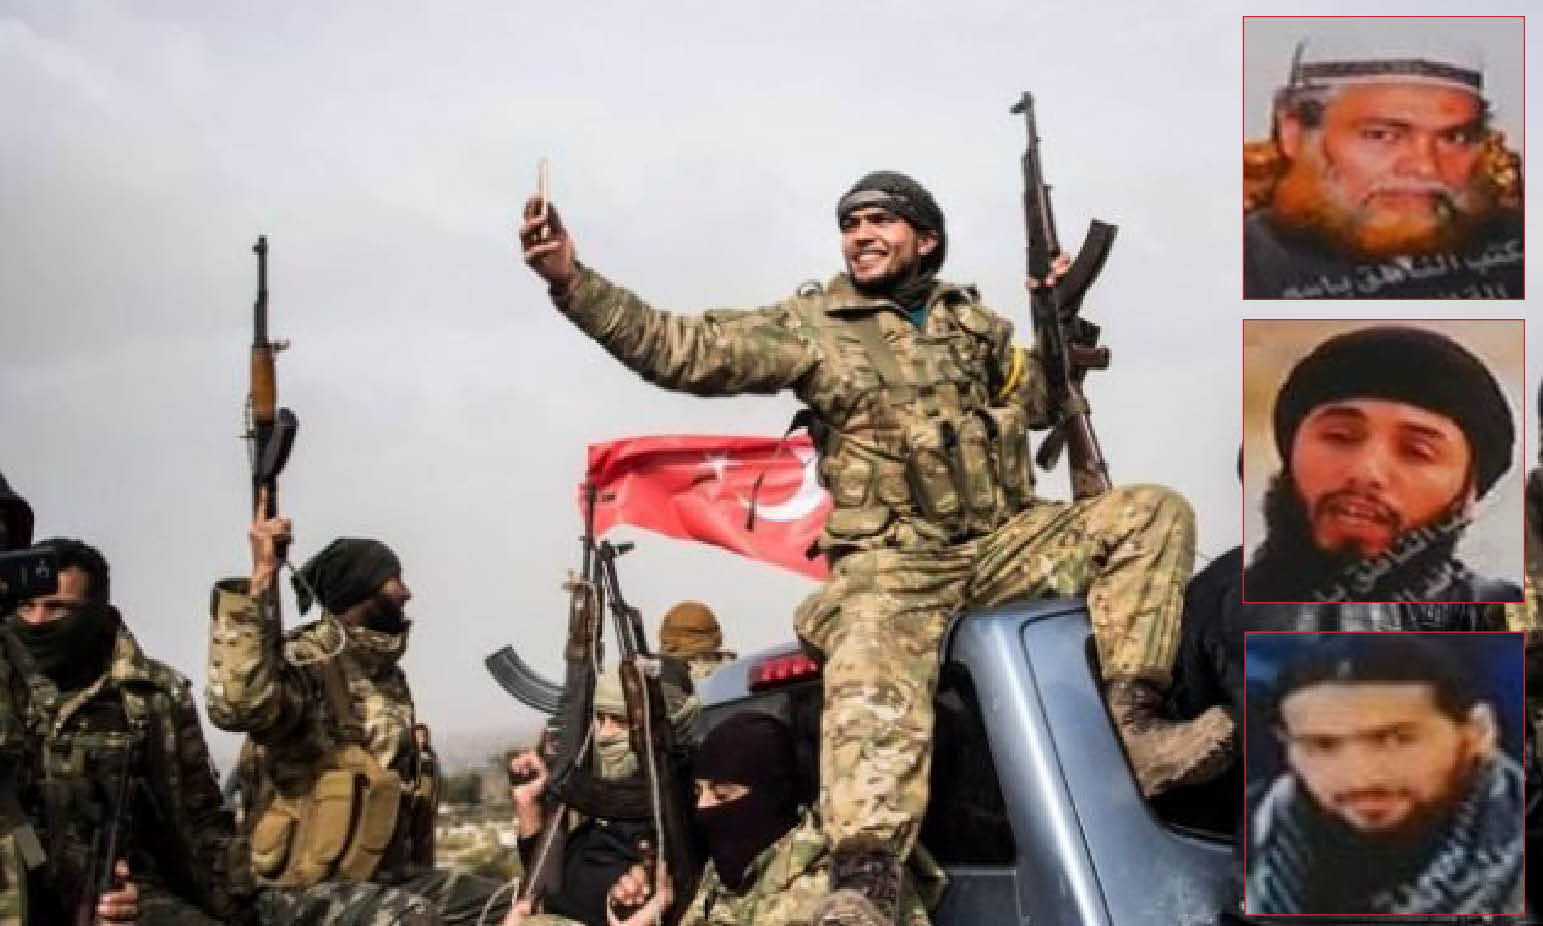 In Libya 229 ISIS Fierce Leaders with 4700 Turkish-backed Jihadists. UN Investigates, Europe Sleeps